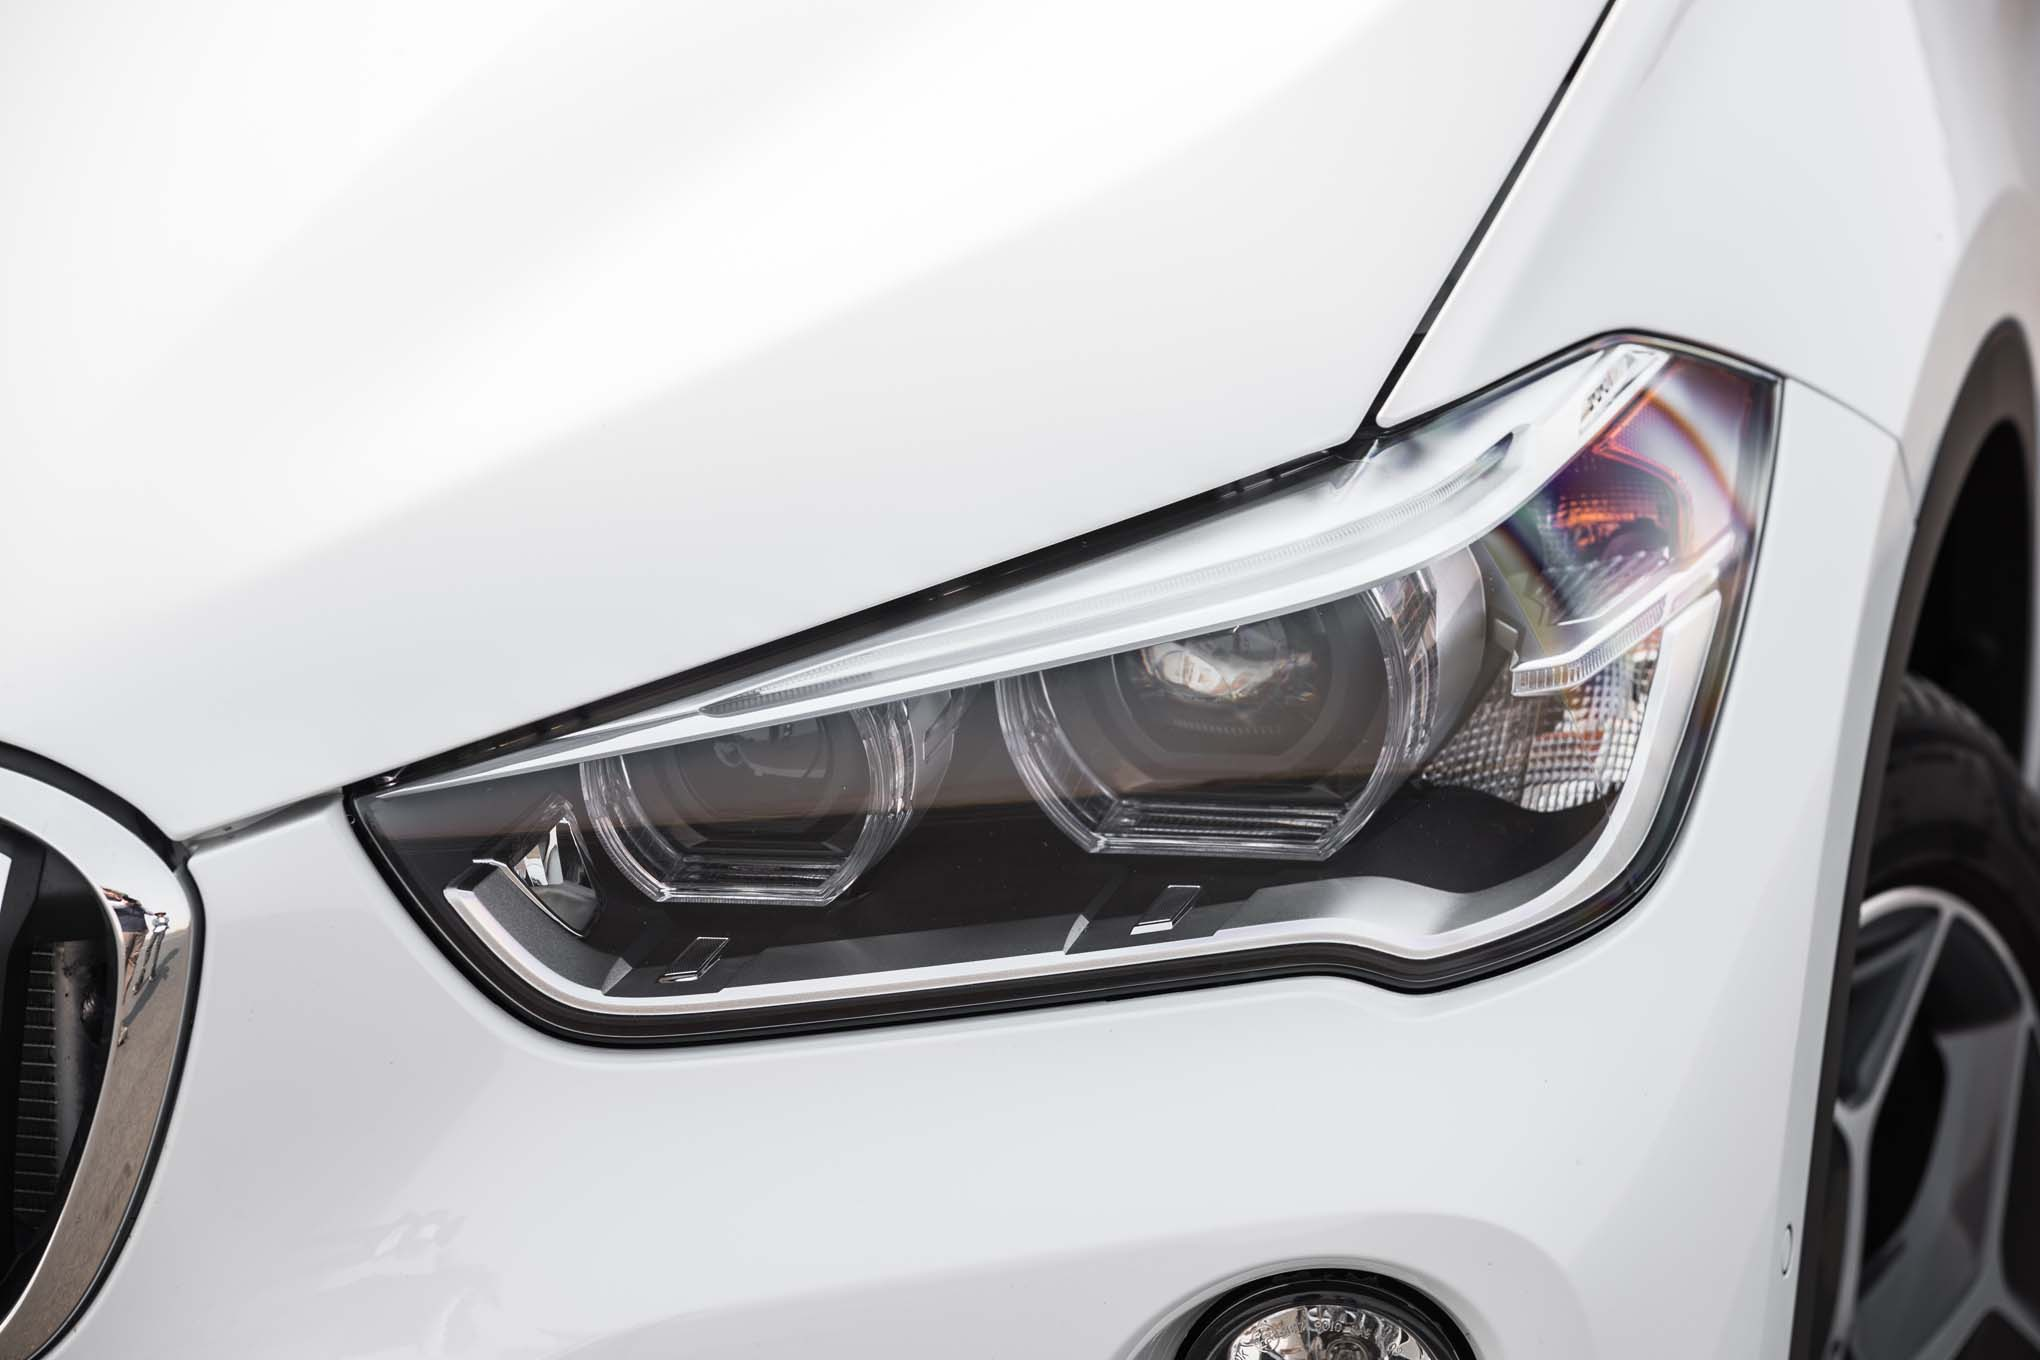 2017 BMW X1 XDrive28i Exterior View Headlight (Photo 6 of 23)